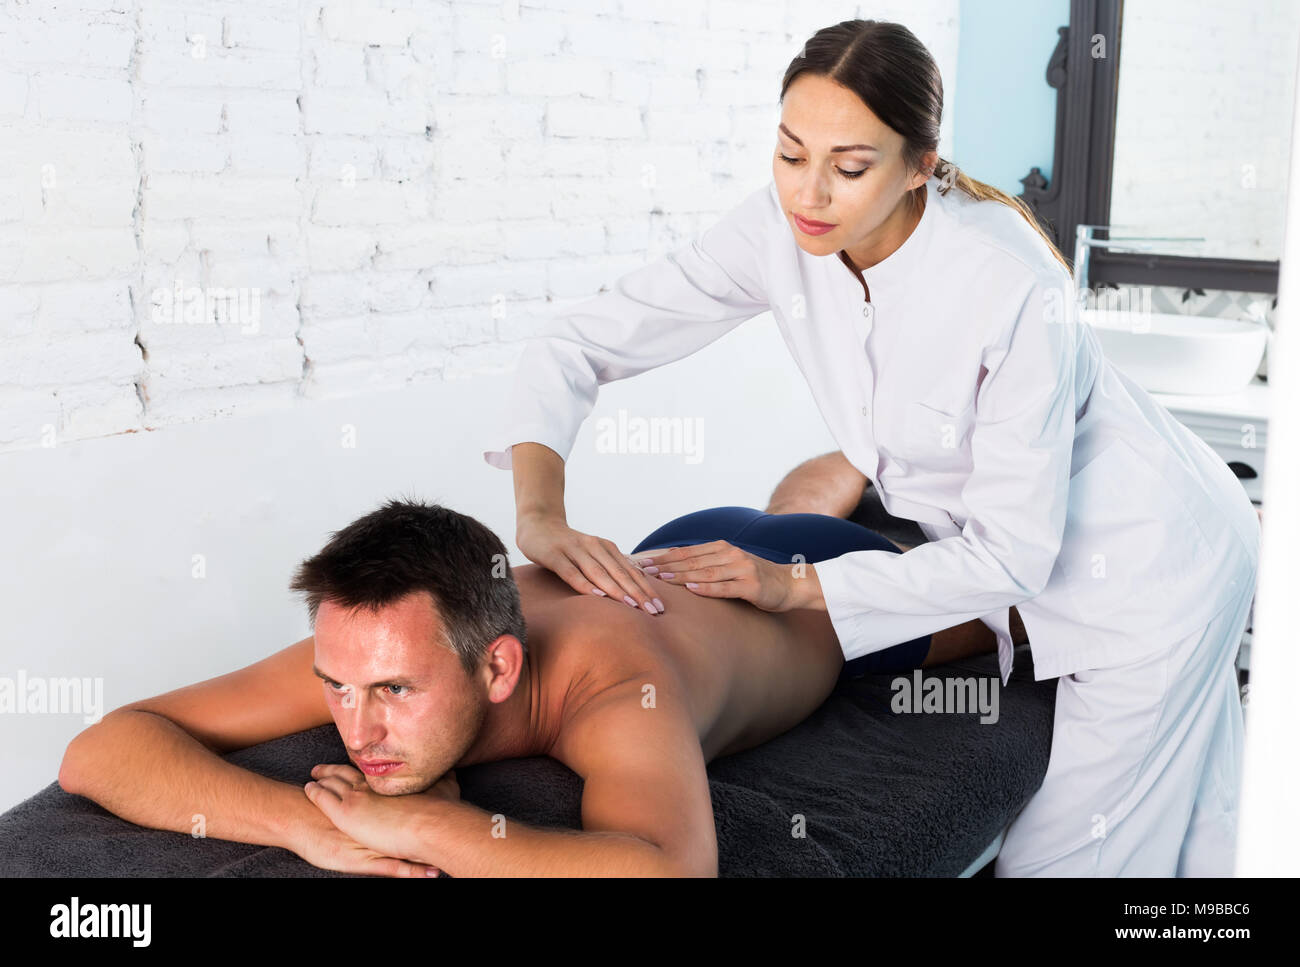 Professional masseuse performing back massage to positive swedish male client in spa center Stock Photo